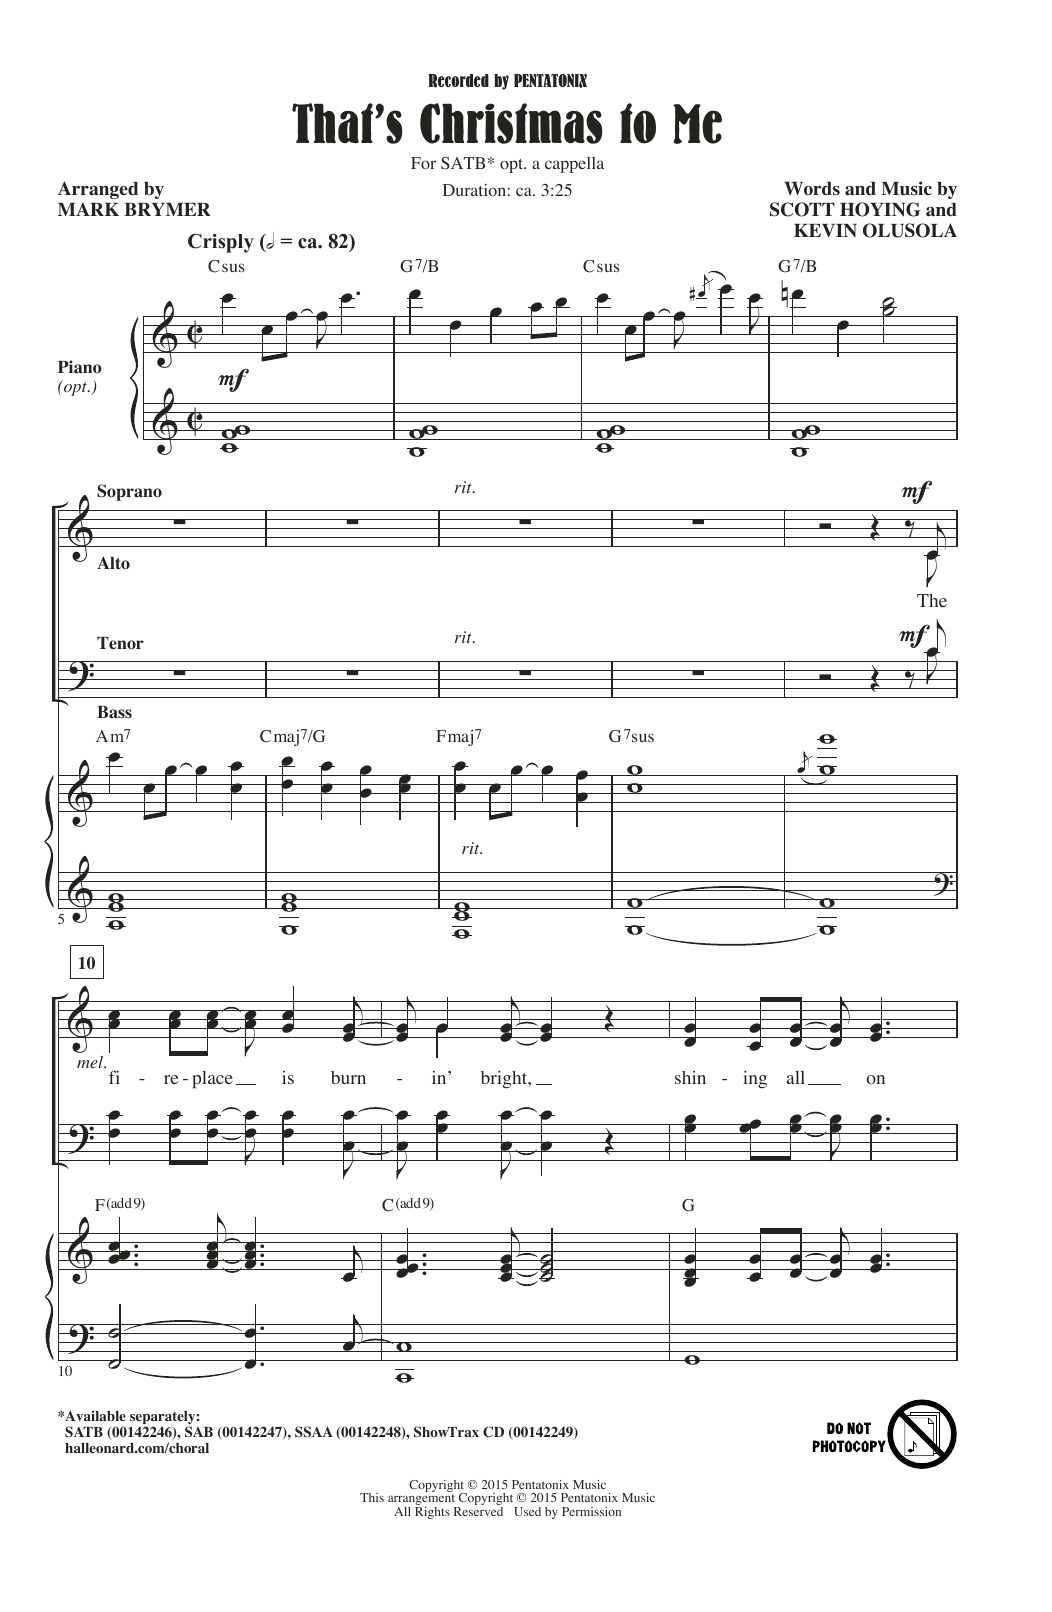 That's Christmas To Me (arr. Mark Brymer) Choral SATB sheet music ...